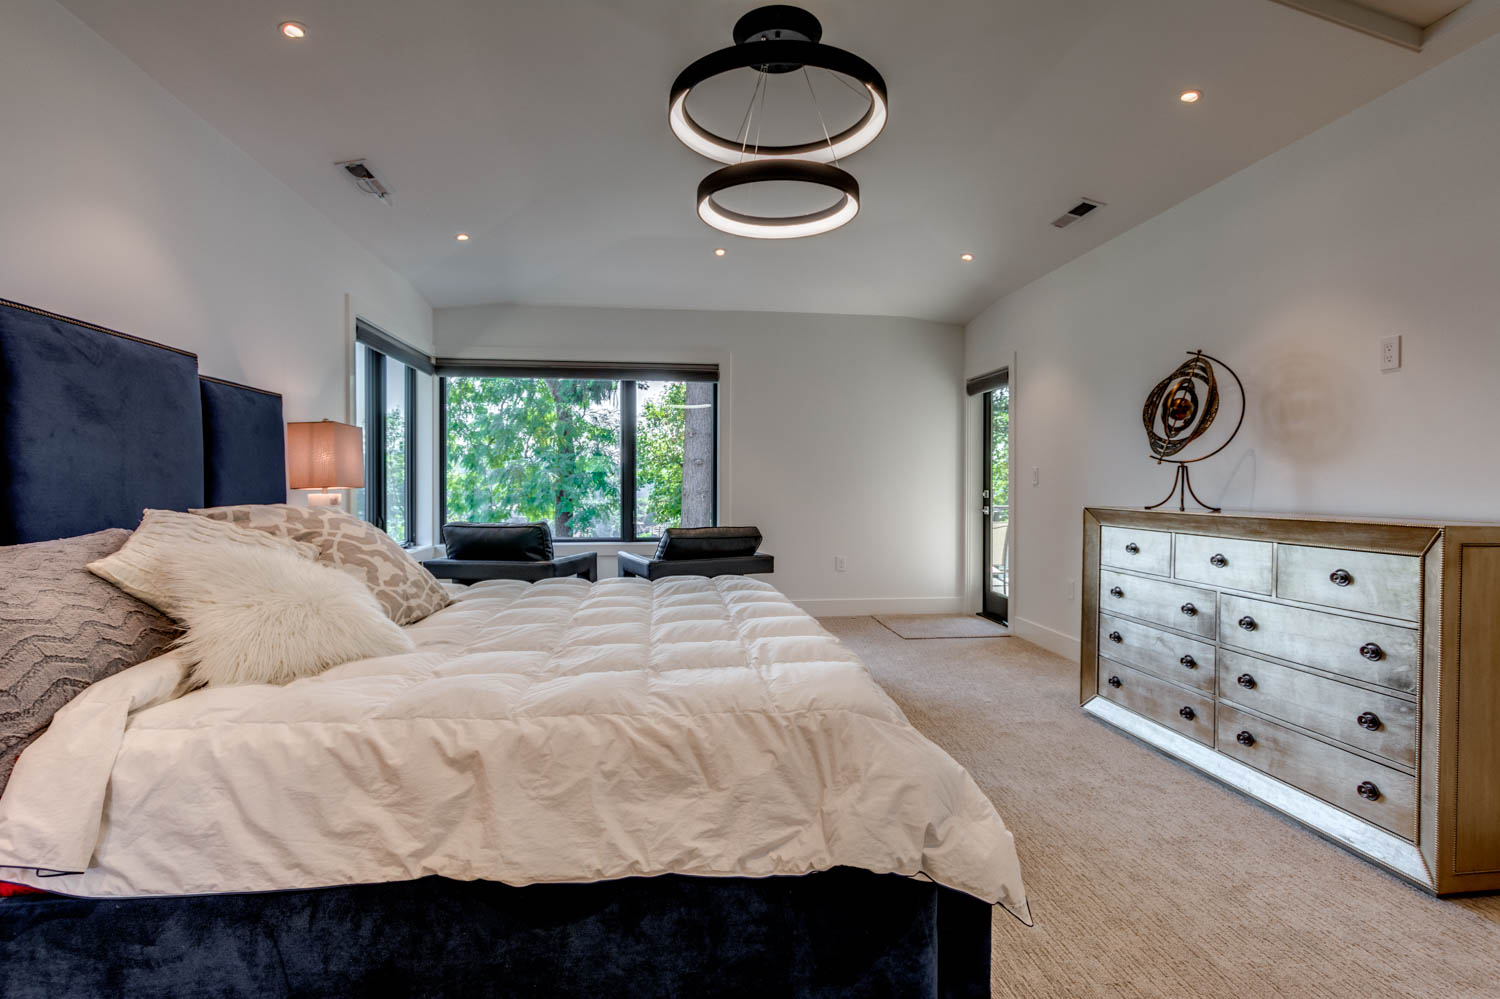 West One Homes Morey Court 069